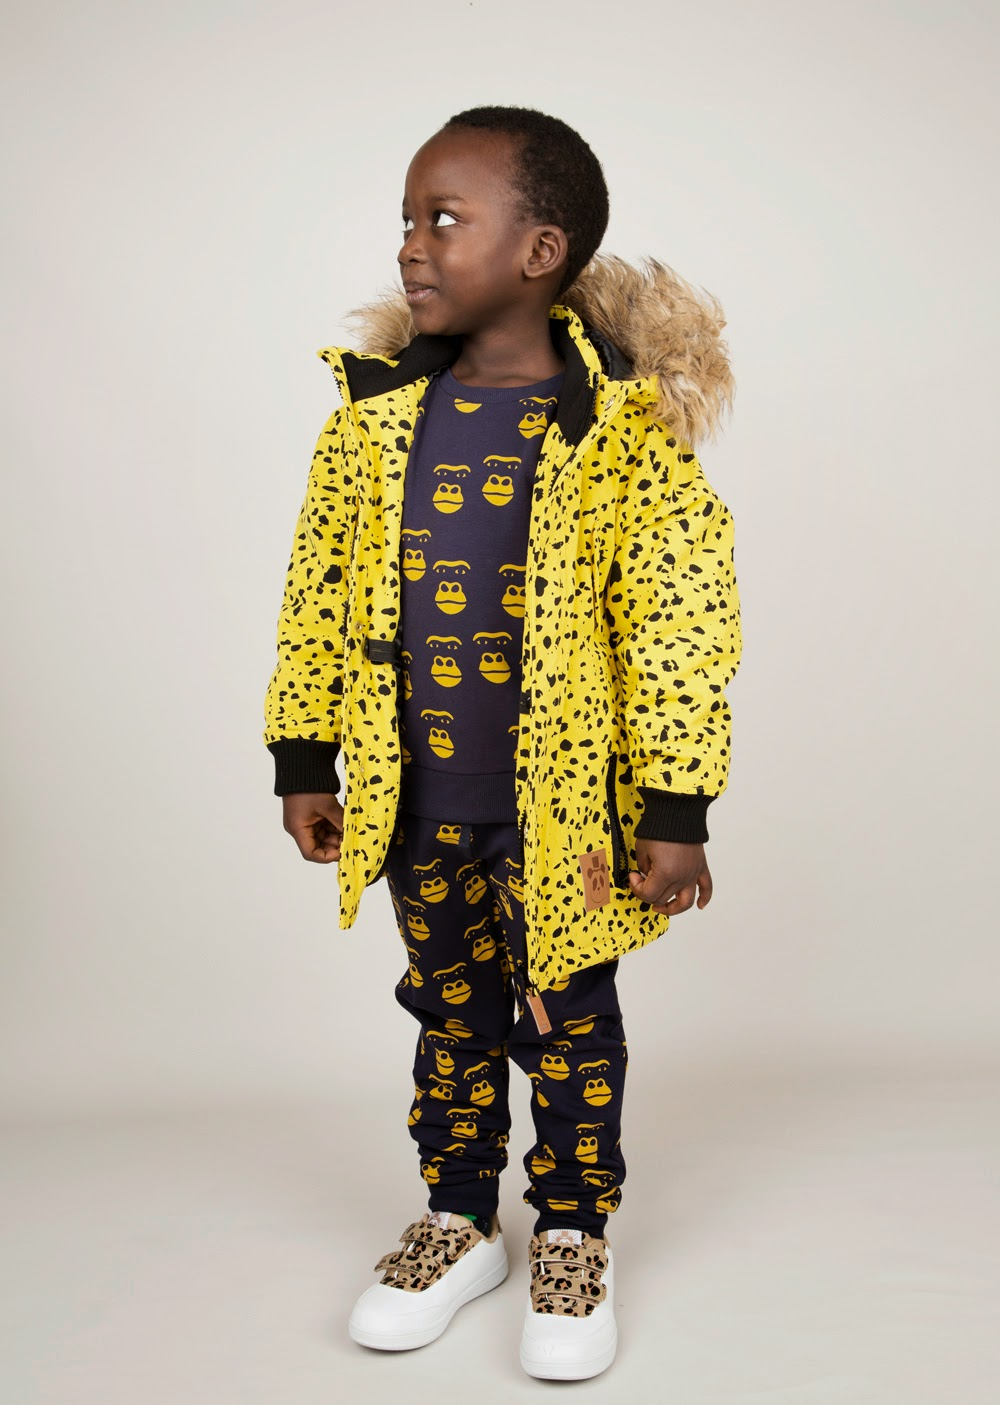 Cool gorilla silhouette print in dark blue and yellow combo - Mini Rodini AW14 collection